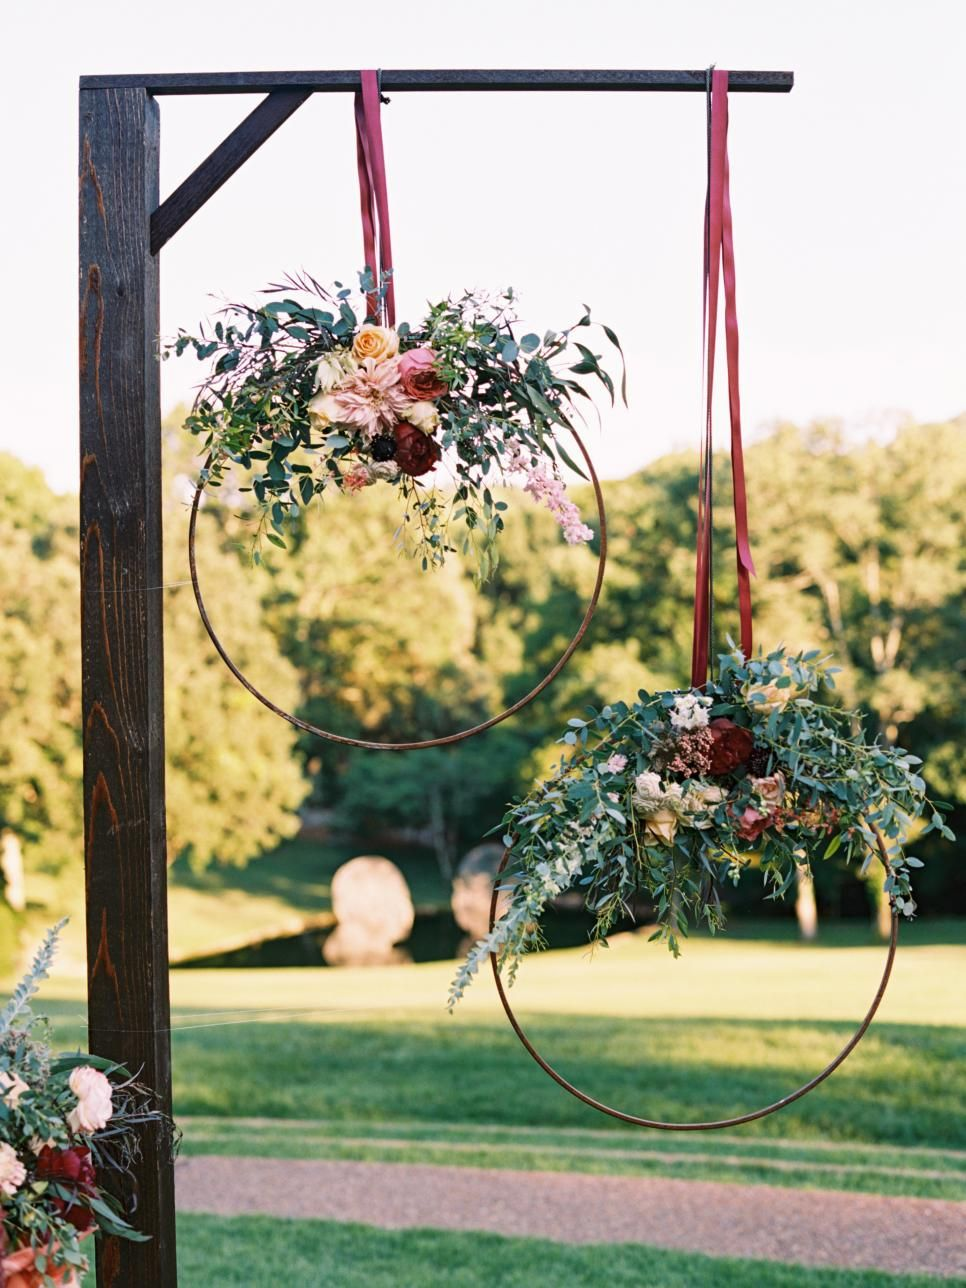 Diy hula hoop wedding decorations   DIY Wedding Arbors Altars u Aisles  Floral arch Backdrops and Arch